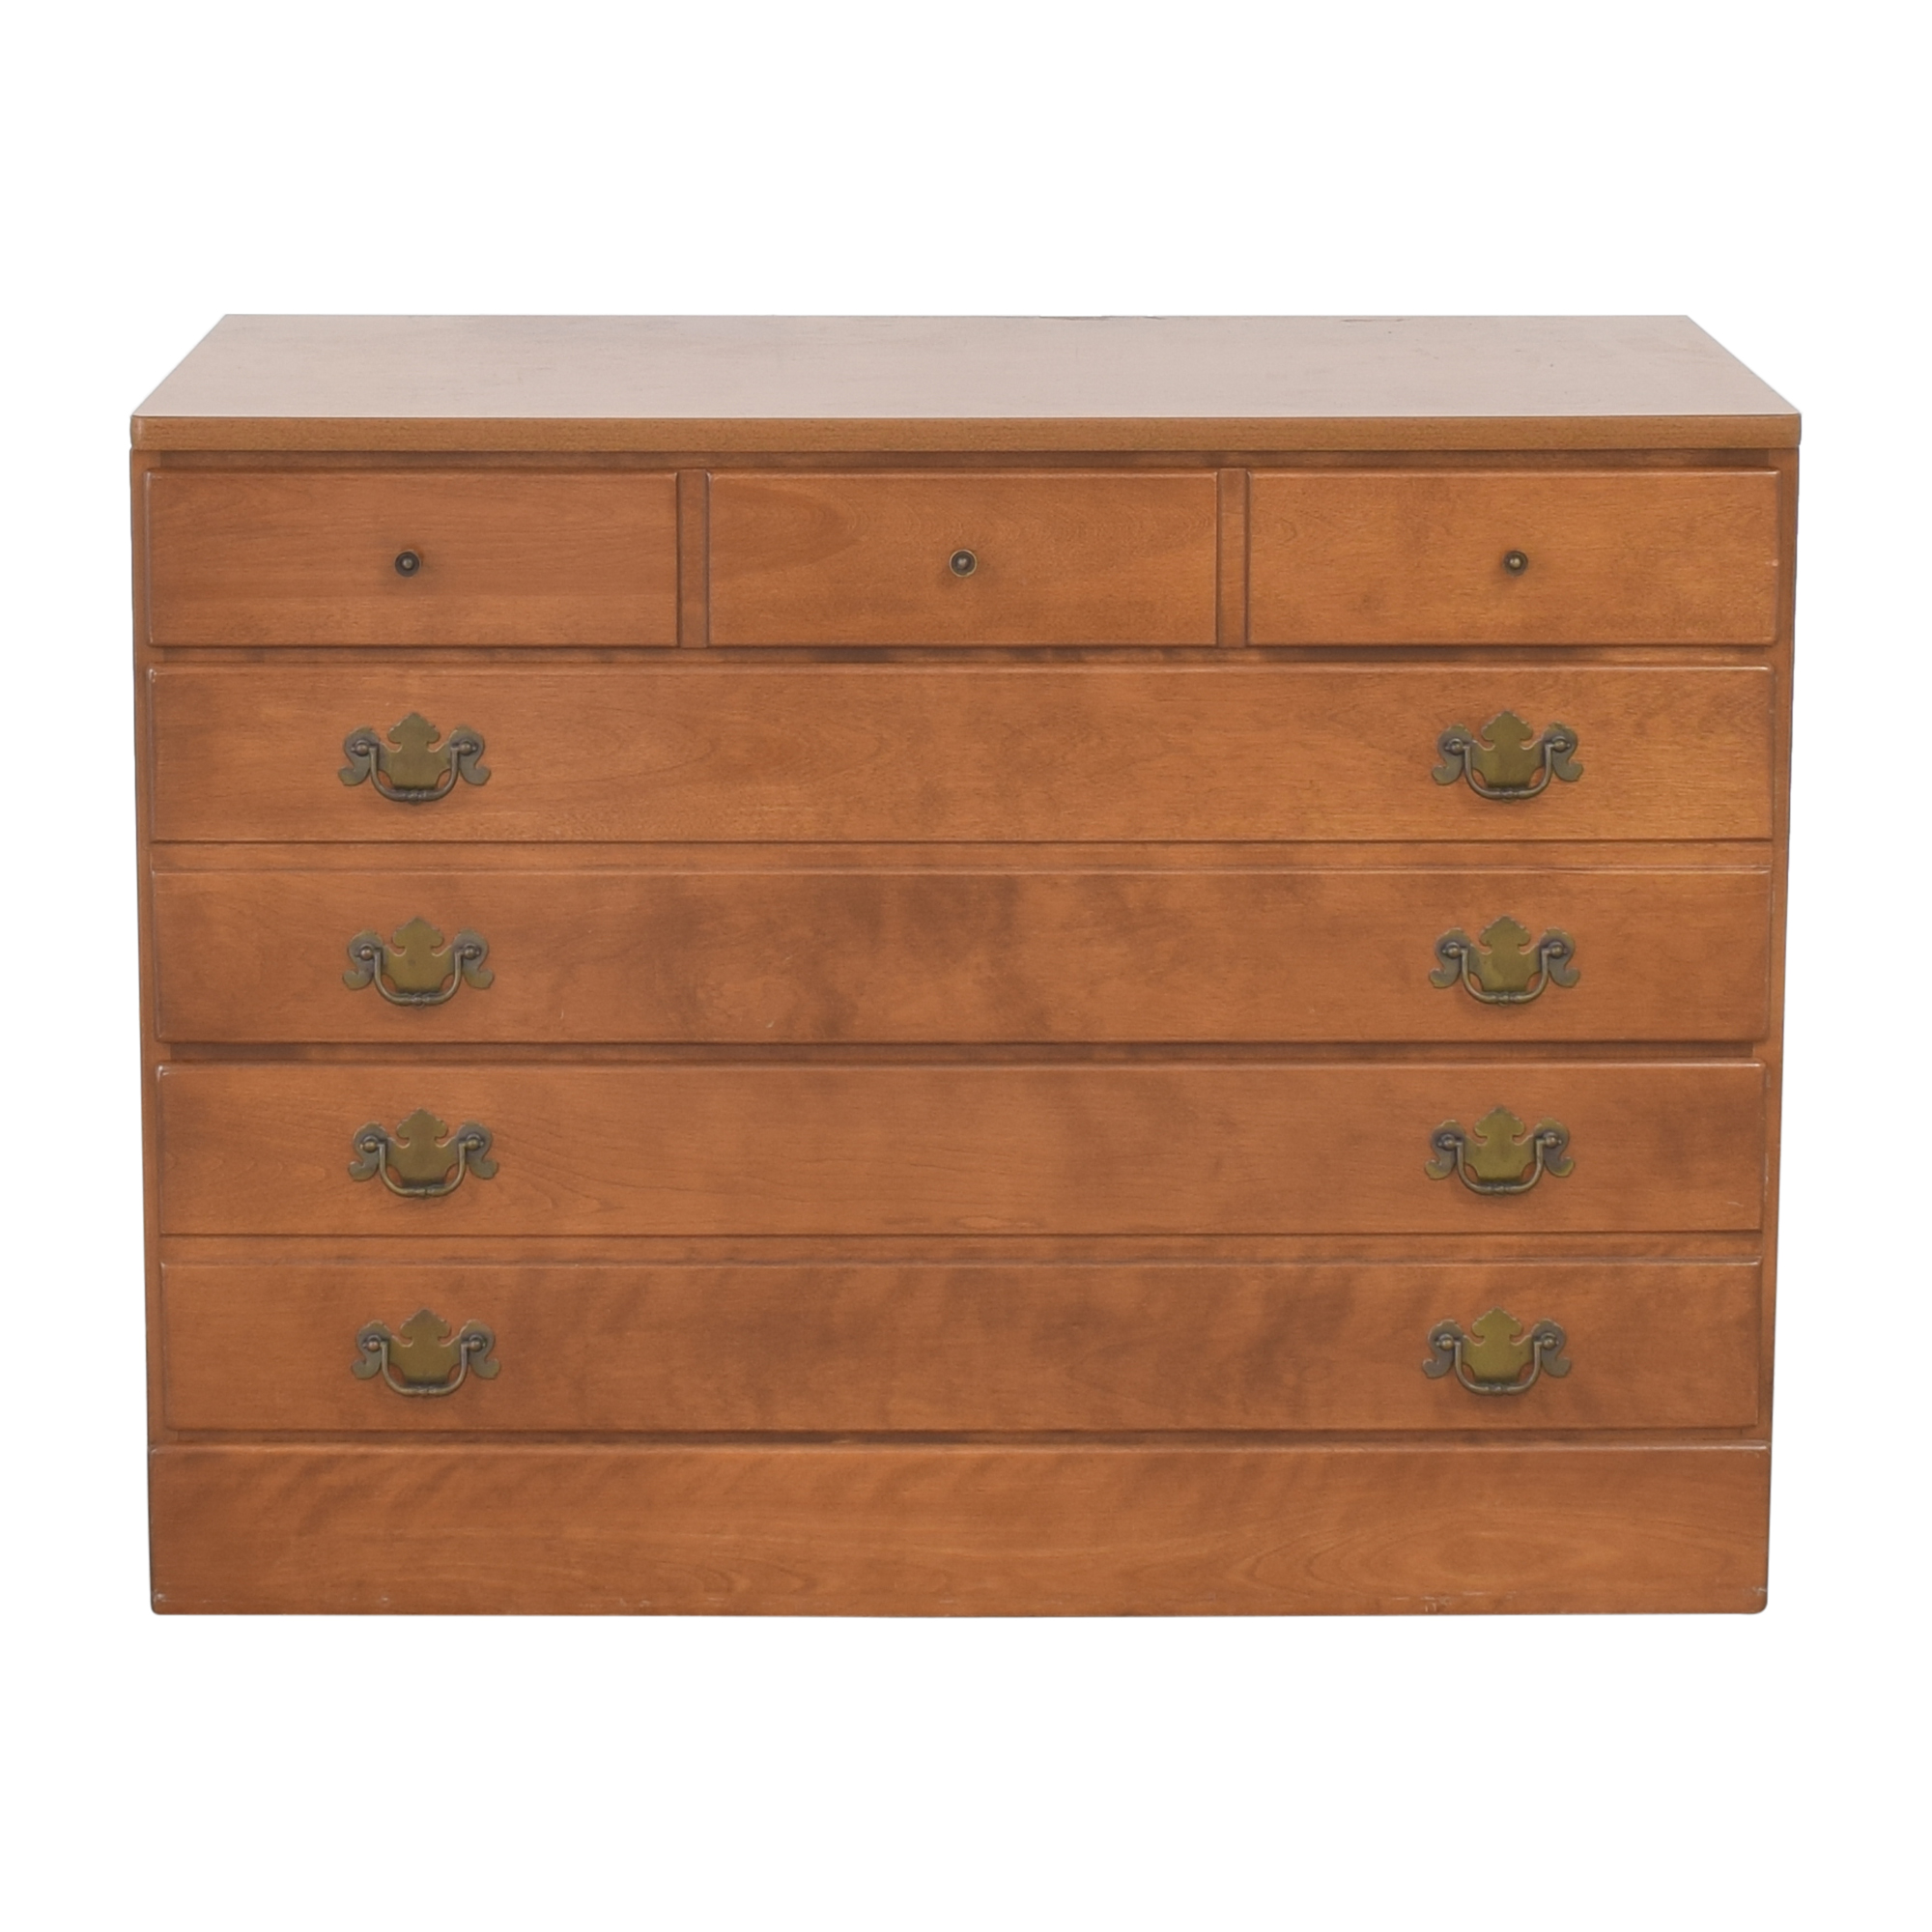 Ethan Allen Three Drawer Dresser / Storage